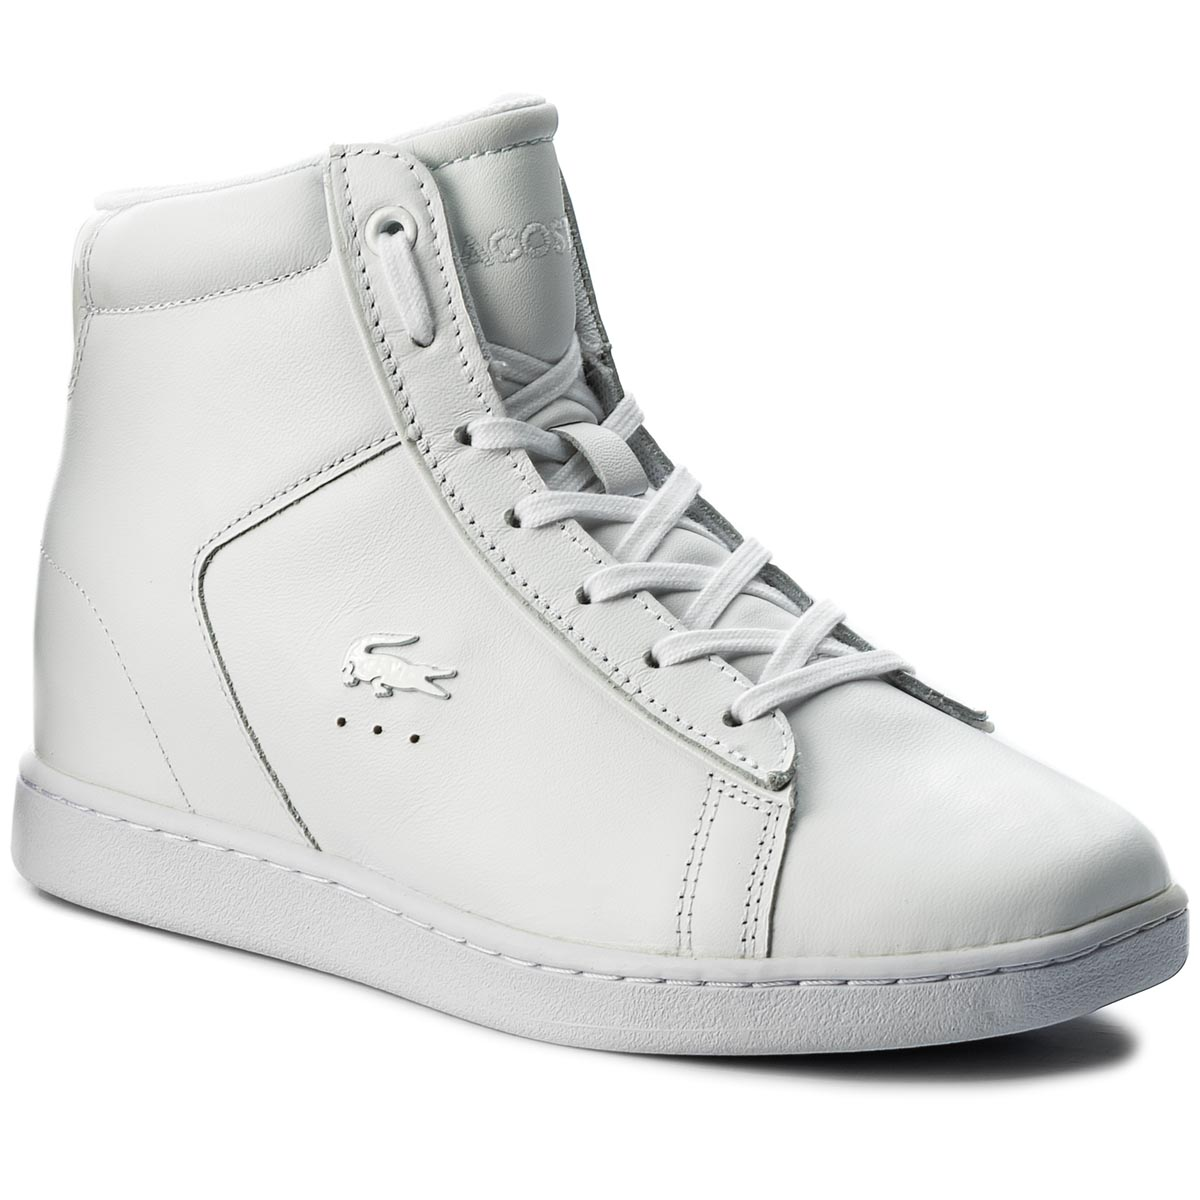 Sneakersy LACOSTE - Carnaby Evo Wedge 417 1 Spw 7-34SPW0017001 Wht